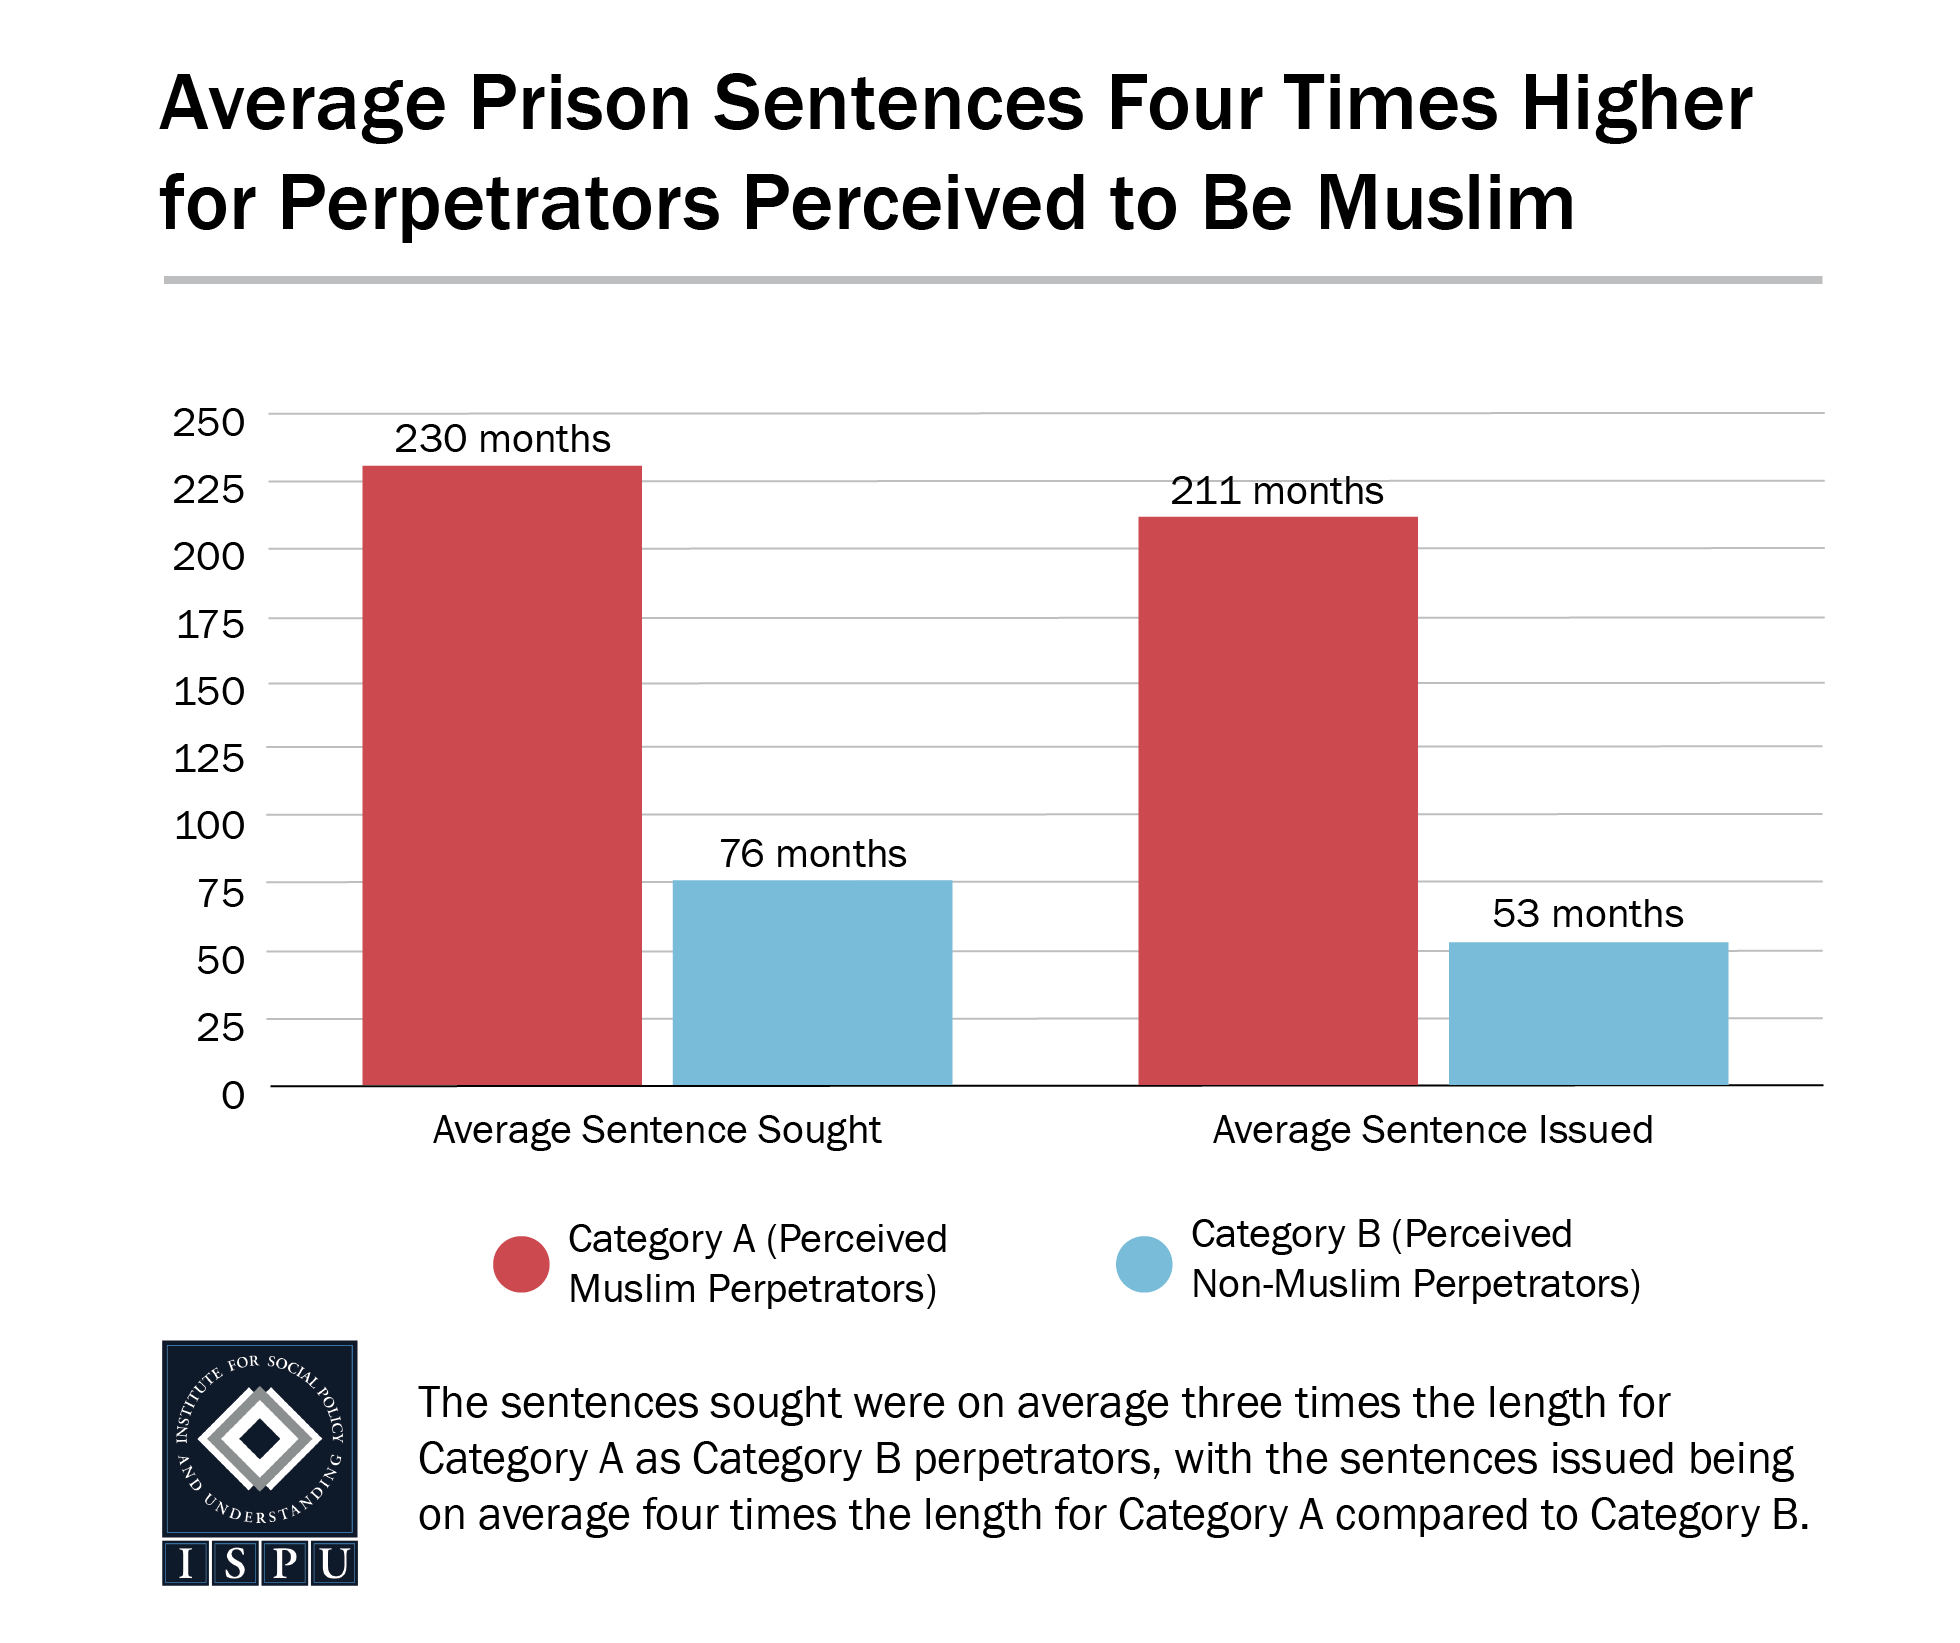 Bar graph that shows Average Prison Sentences are Four Times Higher for Perpetrators Perceived to Be Muslim